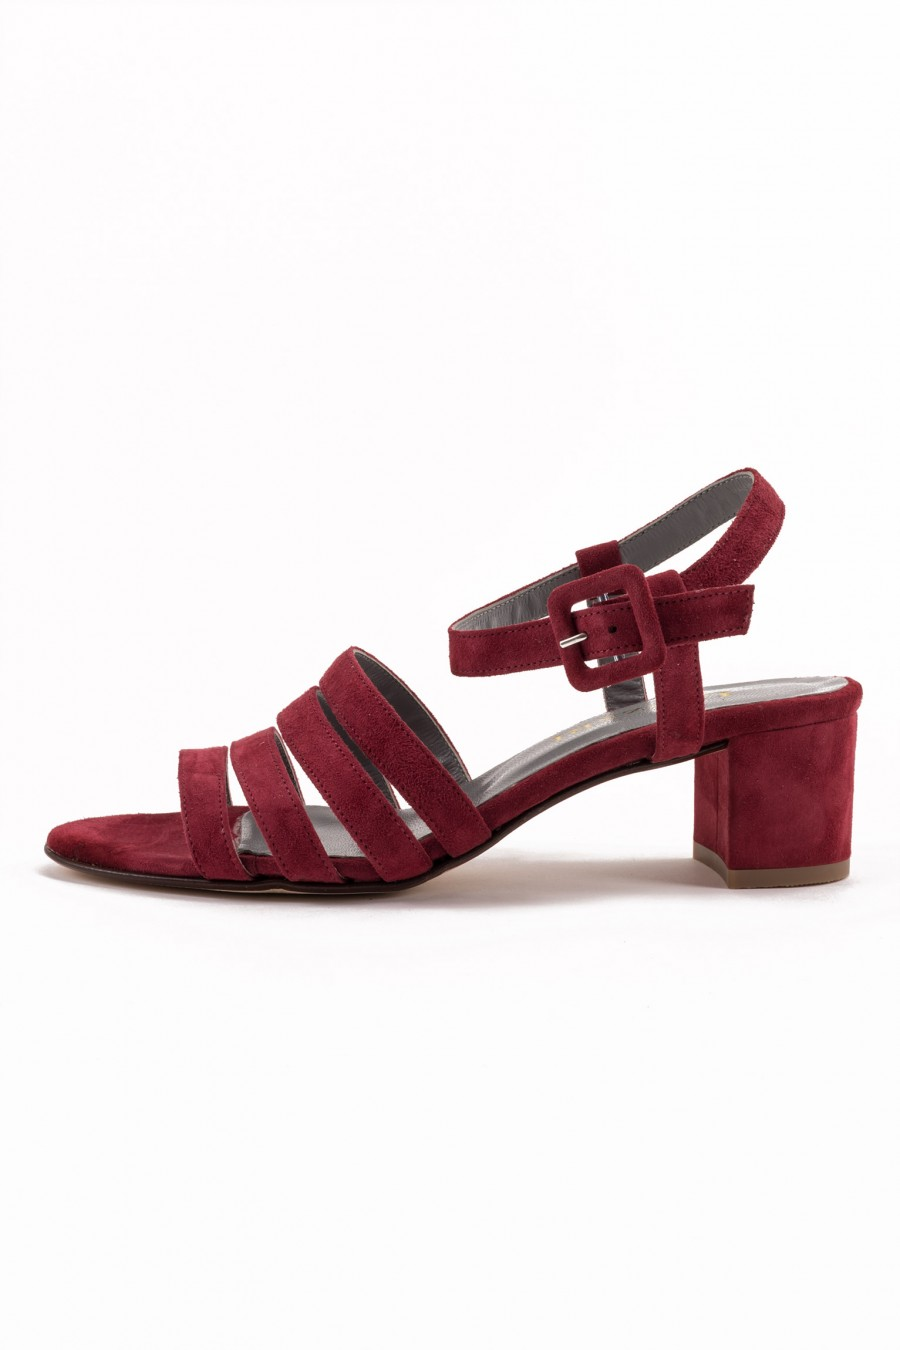 Ruby red sandal